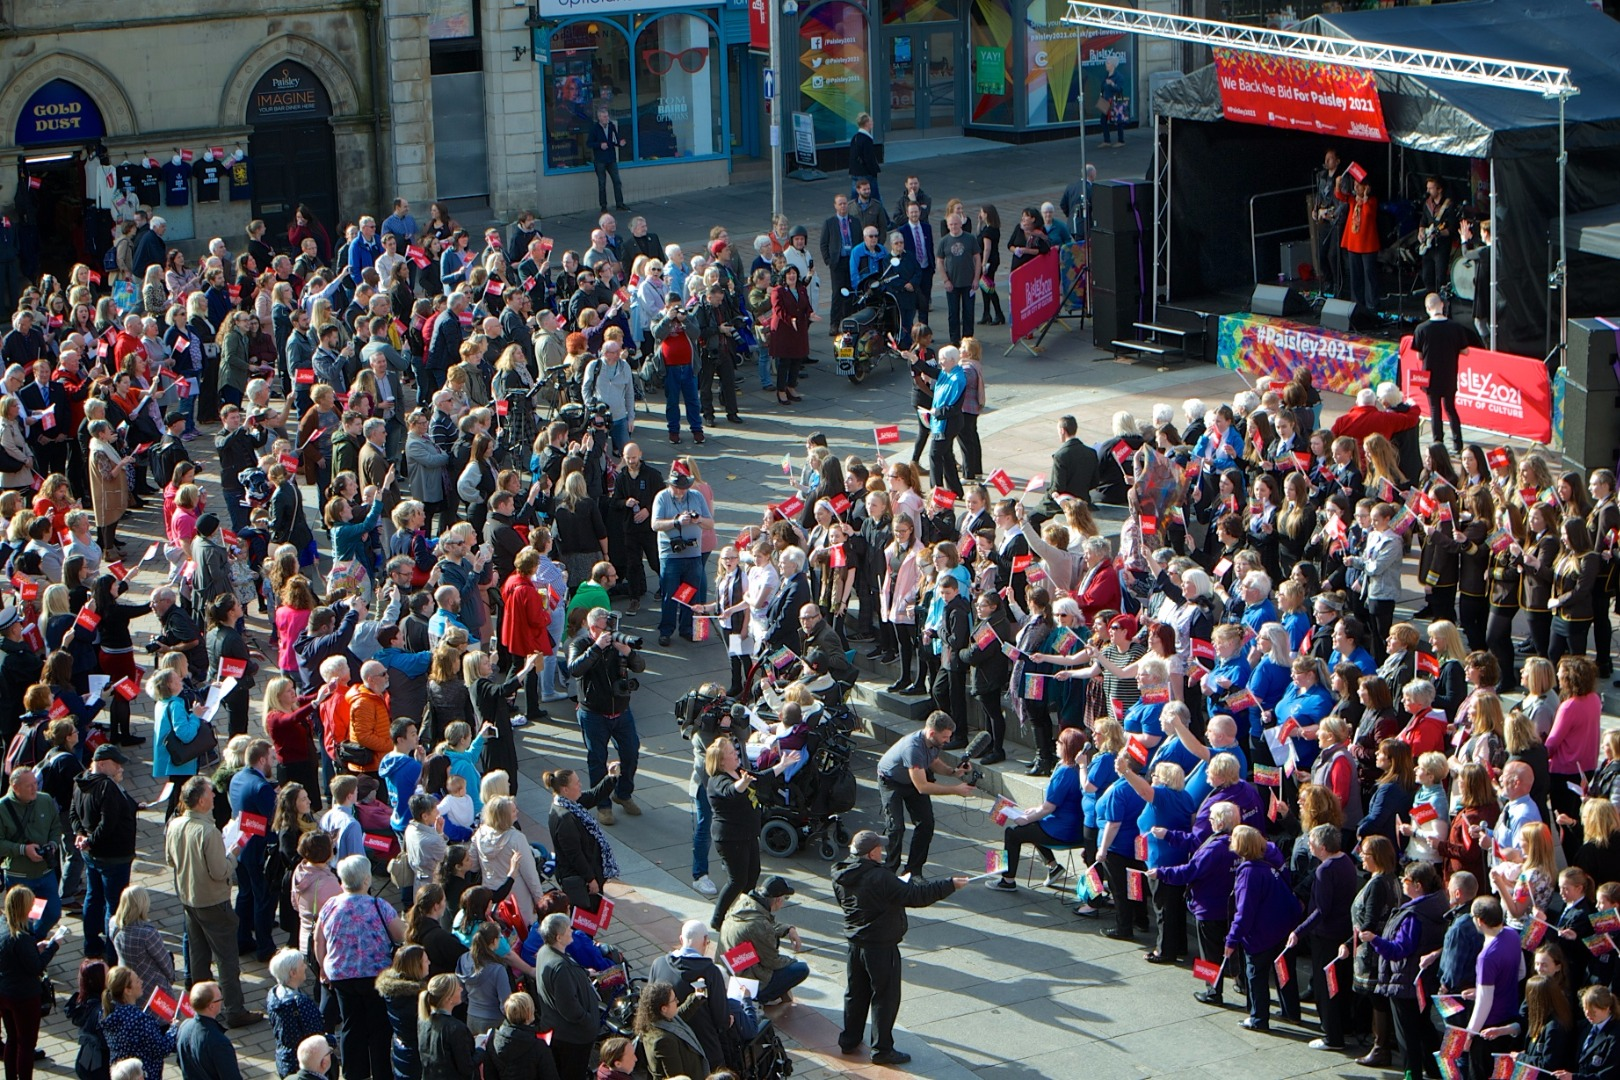 Massed choirs give emotional send-off to Paisley 2021 bid